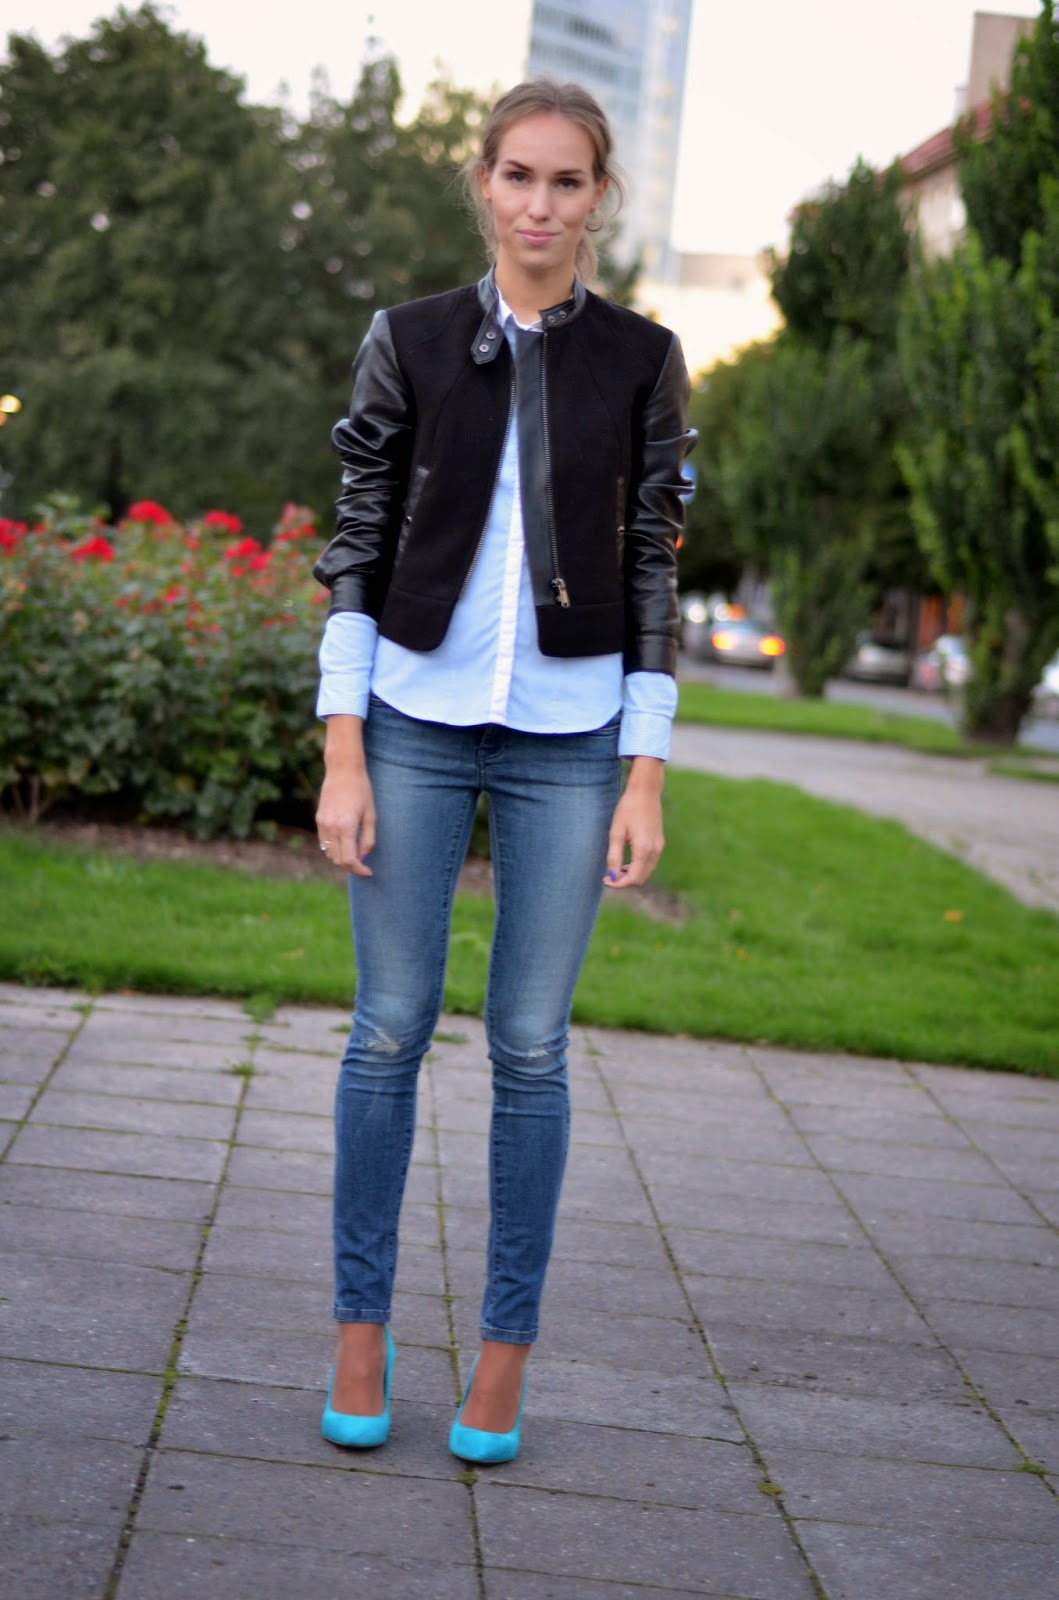 hm-shirt-biker-jacket-zara-ripped-skinny-jeans-river-island-shoes